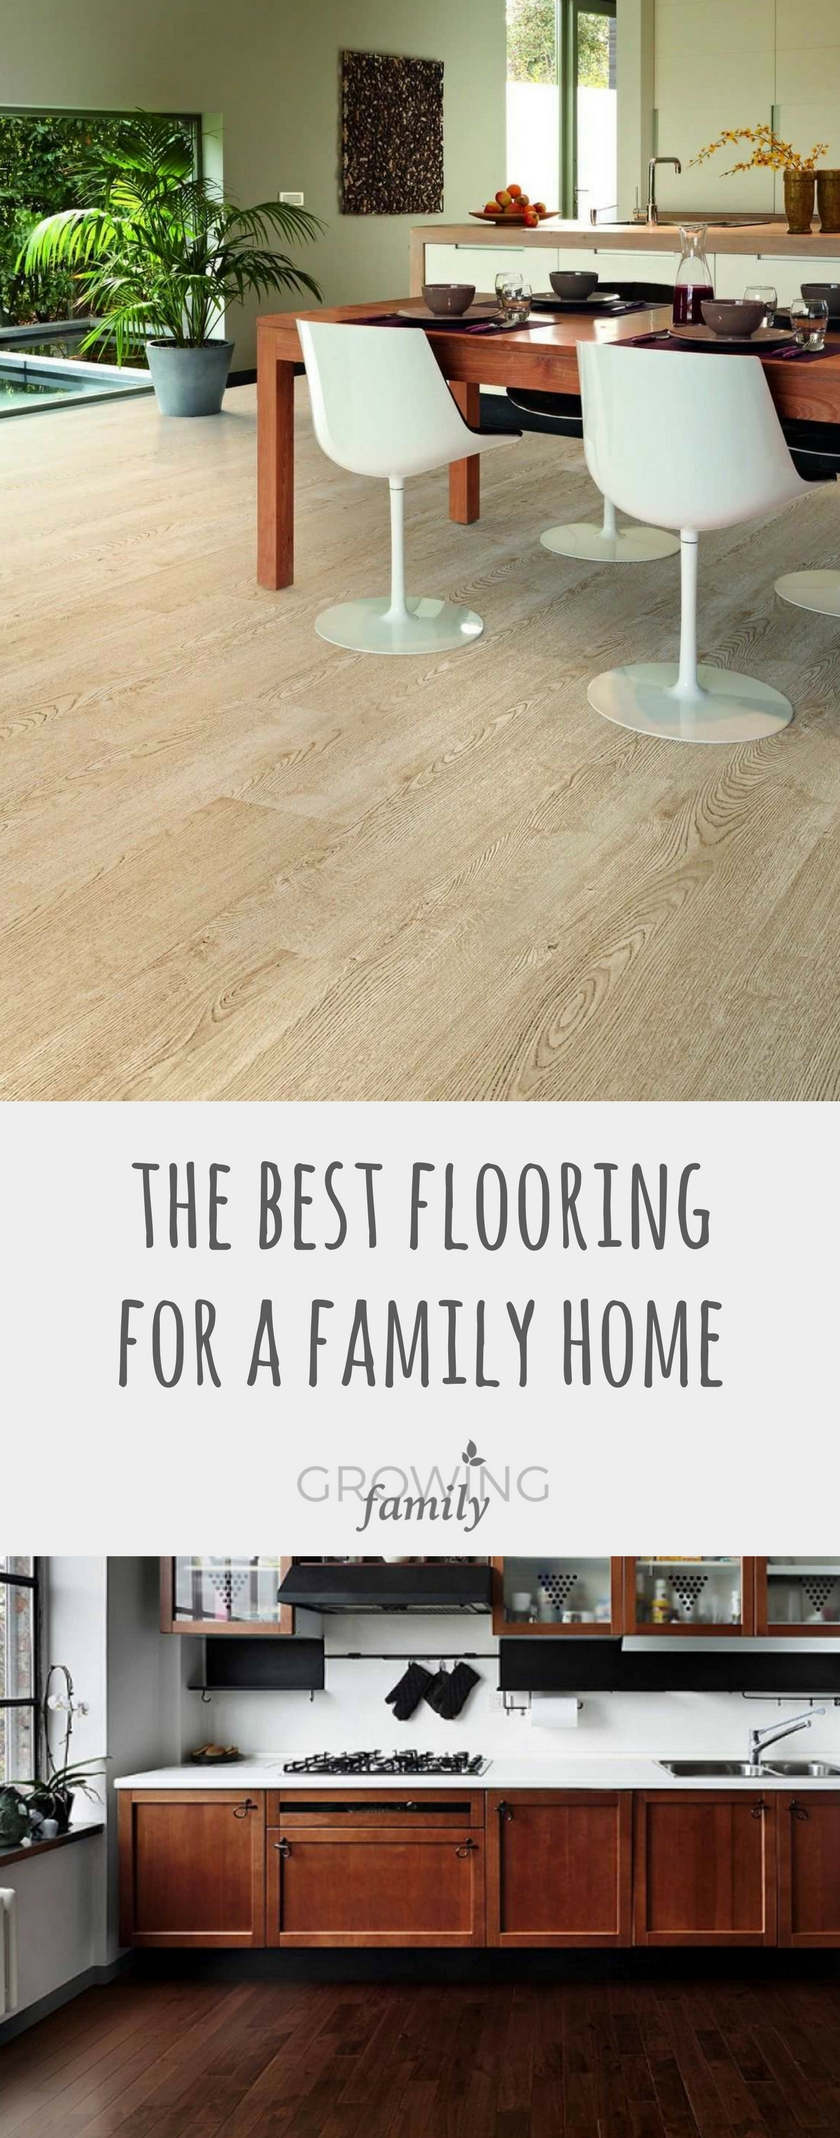 The Best Flooring For A Family Home